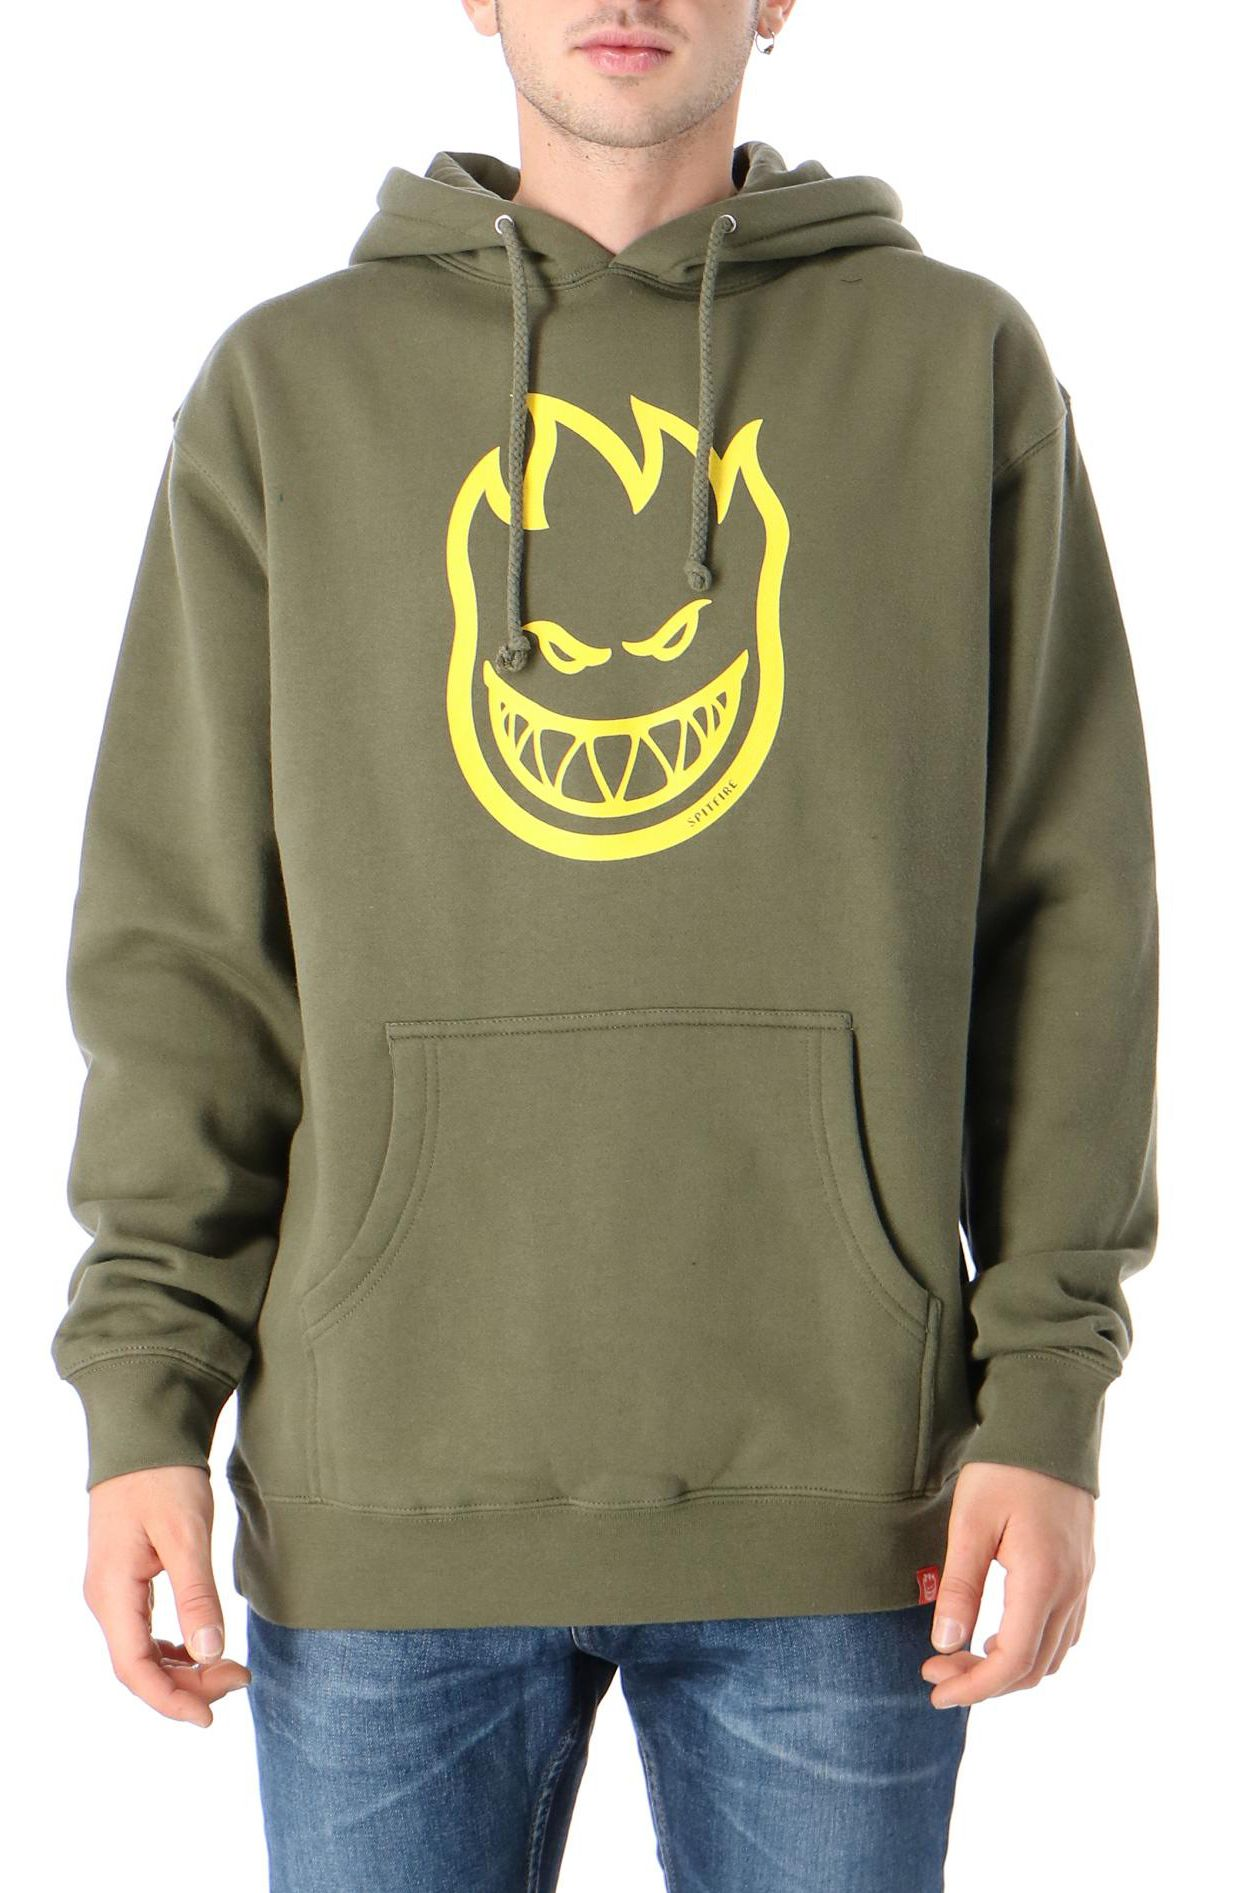 Sweat Capuz Spitfire BIGHEAD Army W/ Yellow Print